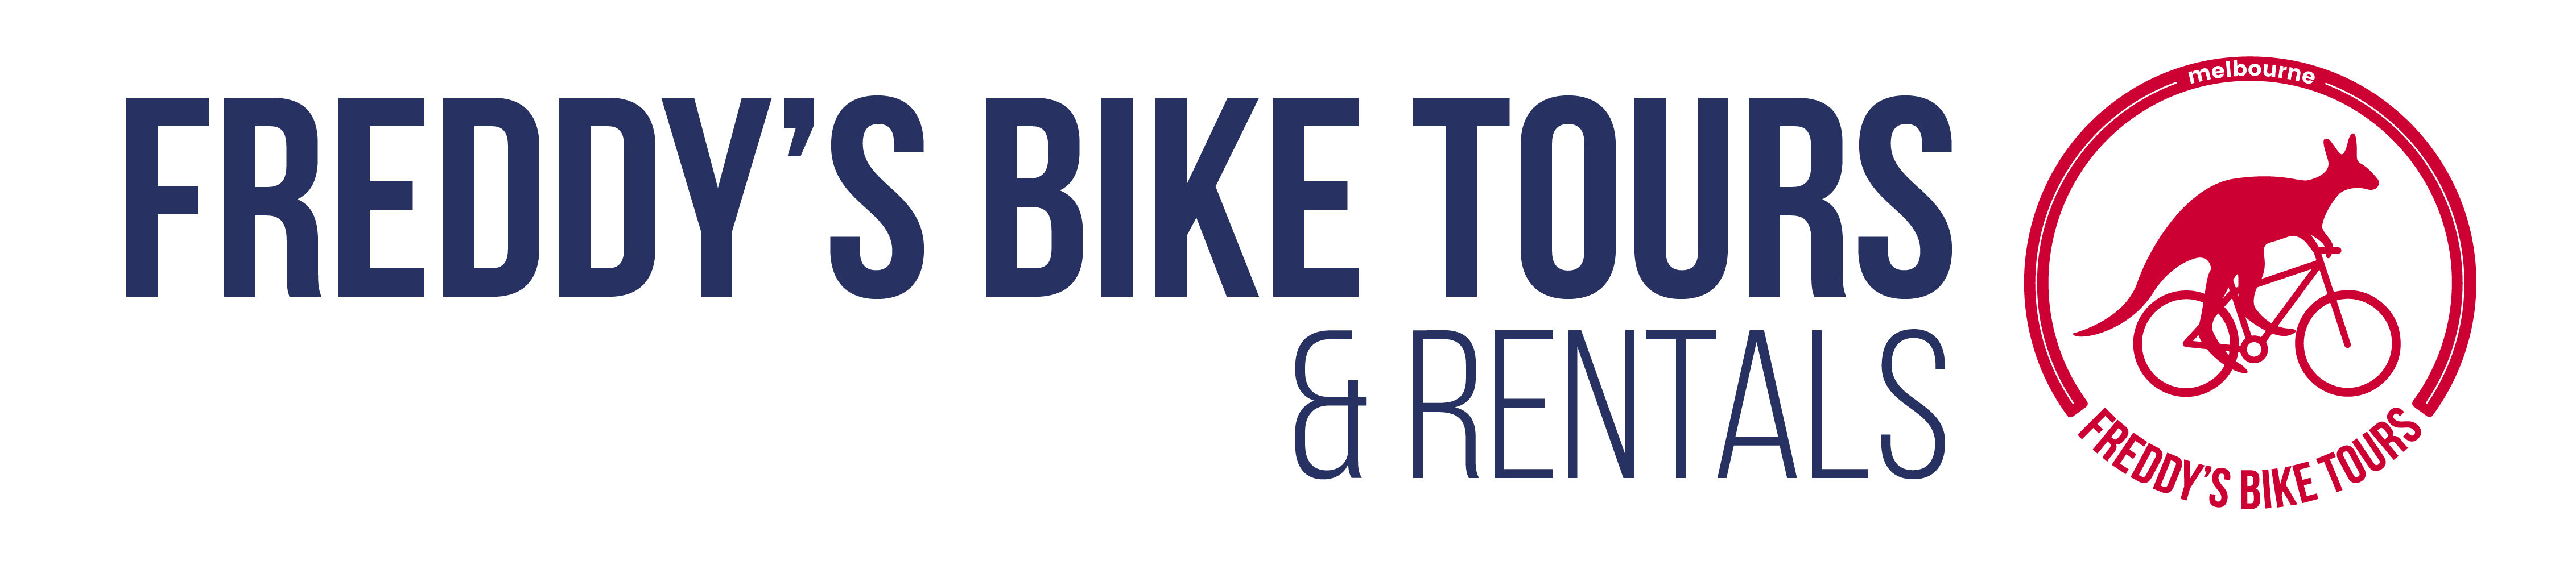 Freddy's Bike Tours & Rentals